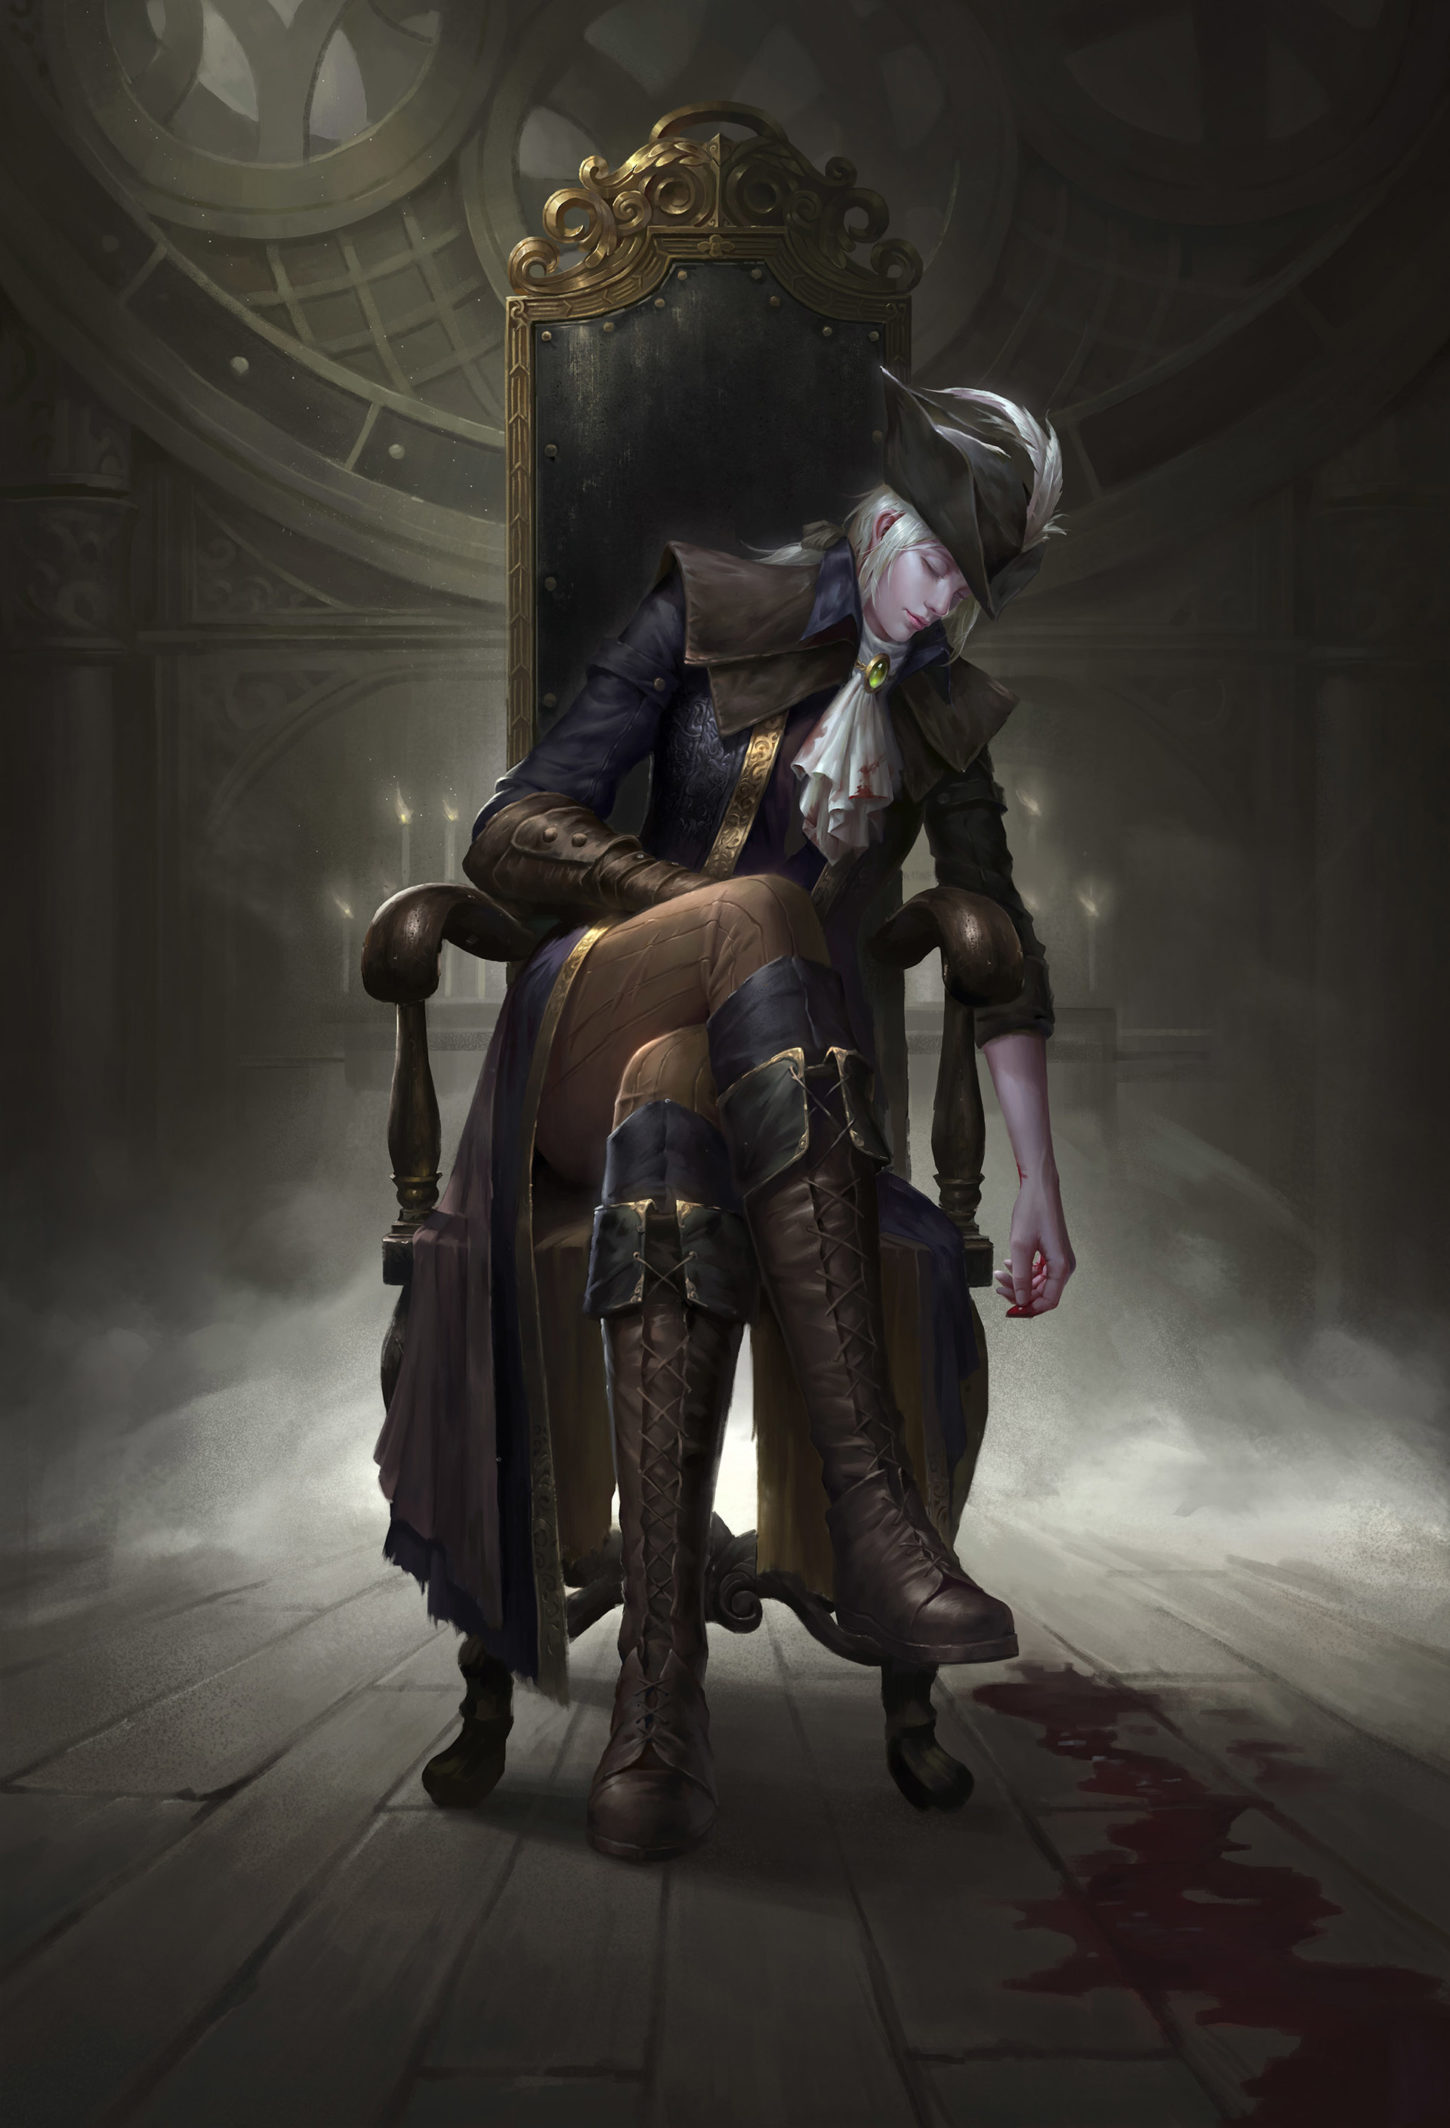 Lady Maria of the Astral Clocktower, wenfei ye_01